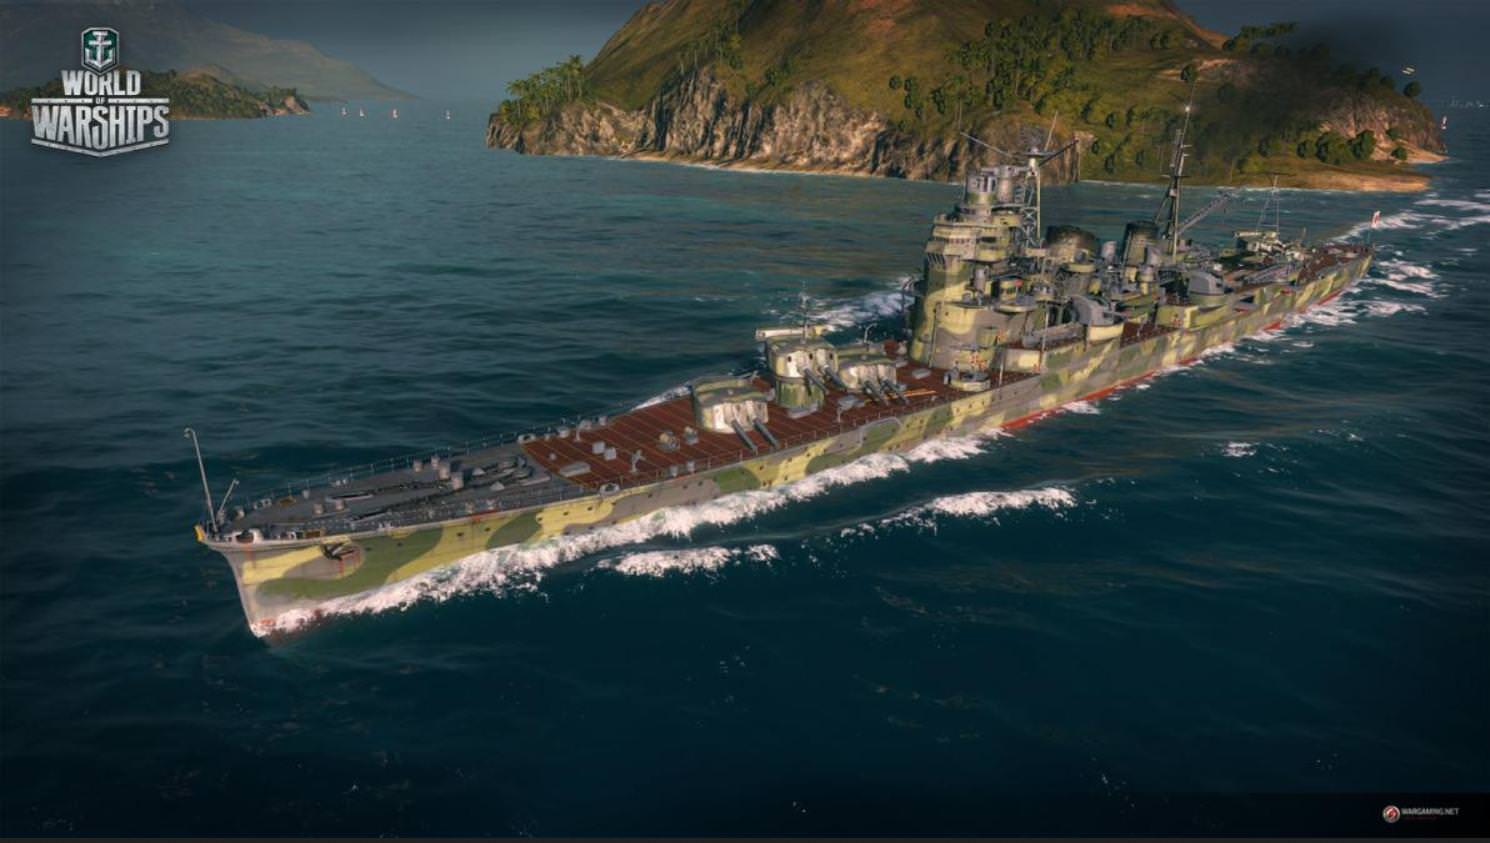 World of Warships Best Cruiser Lines, Ranked Weakest to Strongest